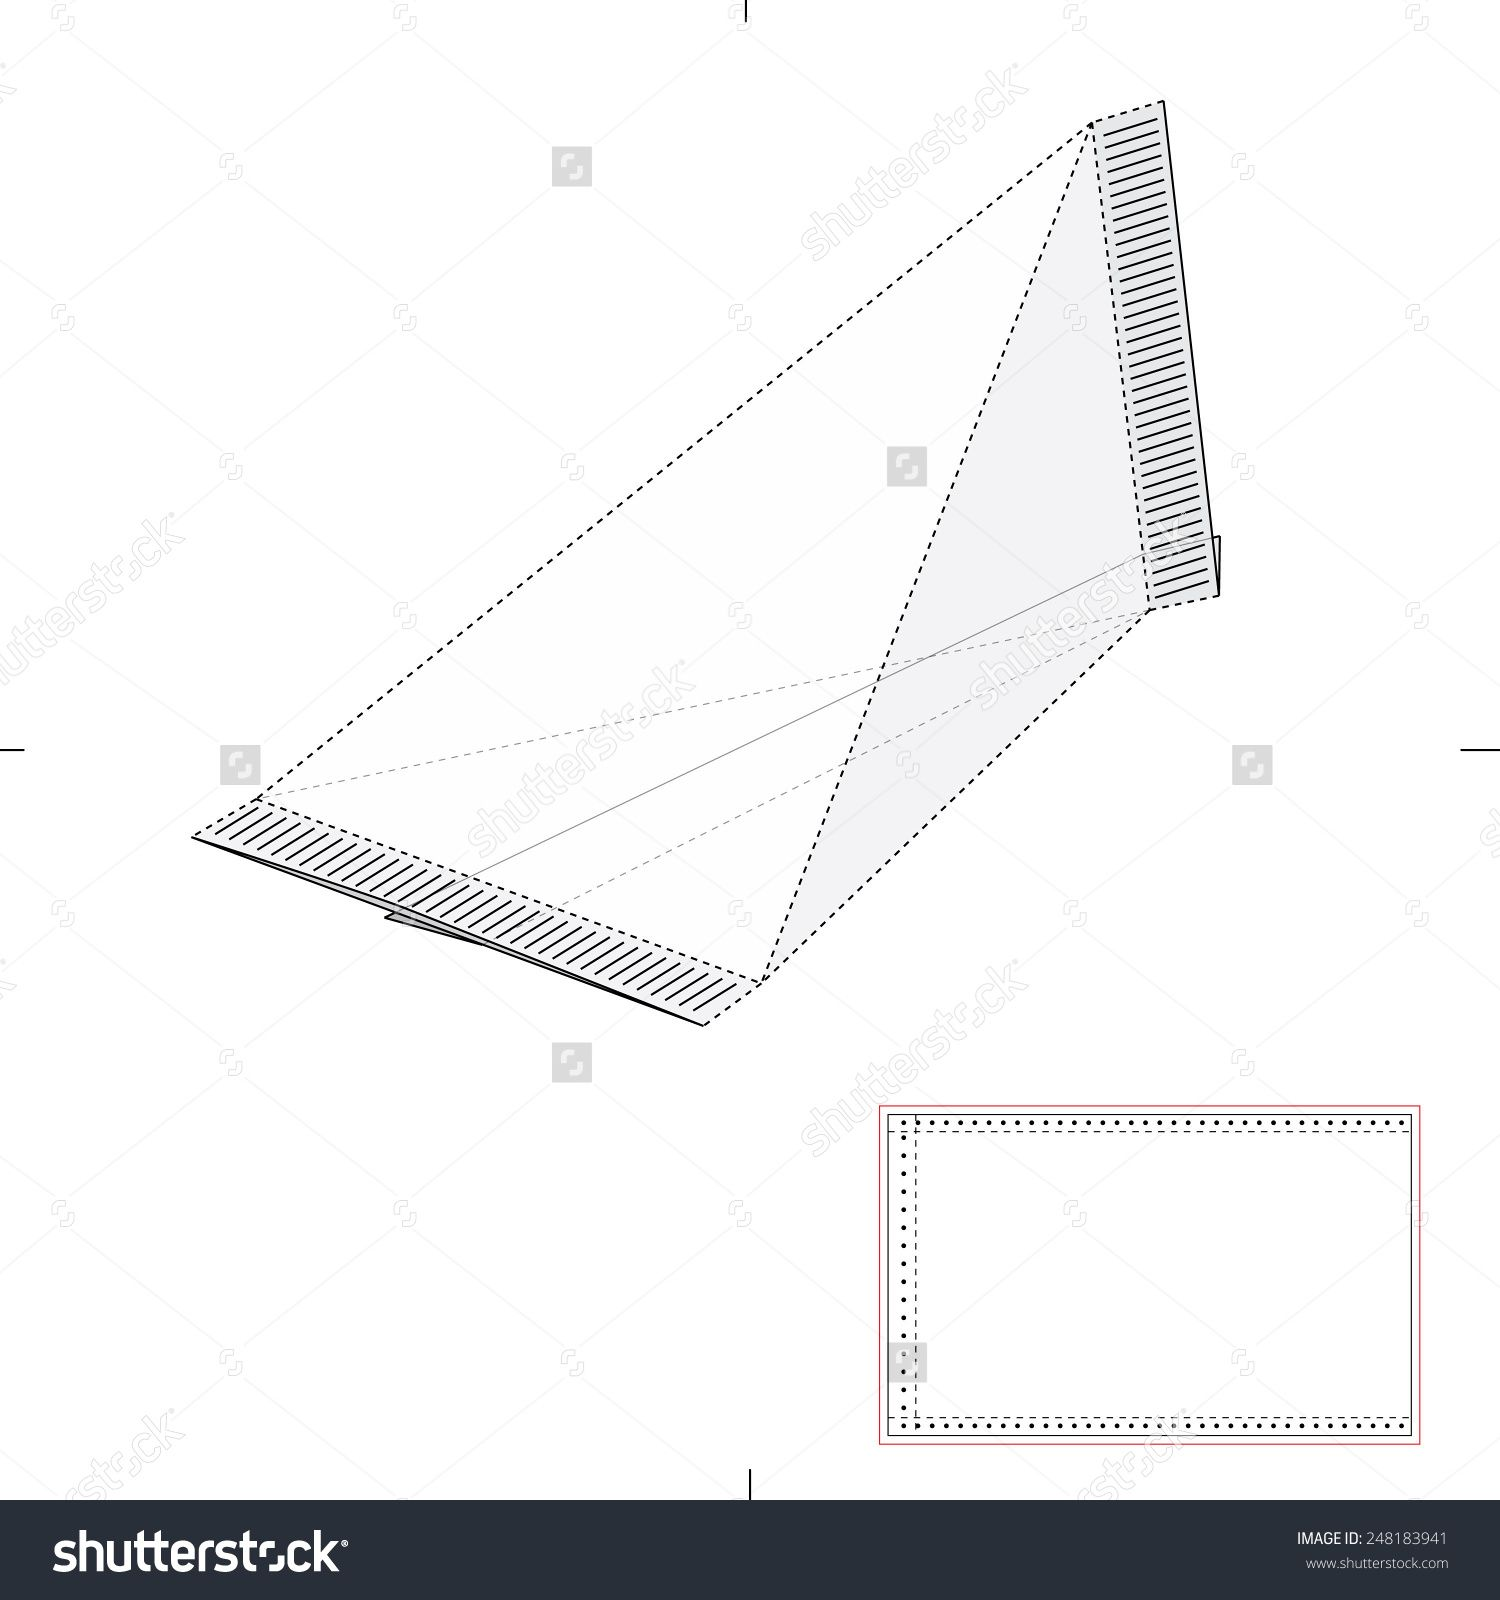 Tetrahedron Box For Liquids With Die Cut Template Stock Vector ...